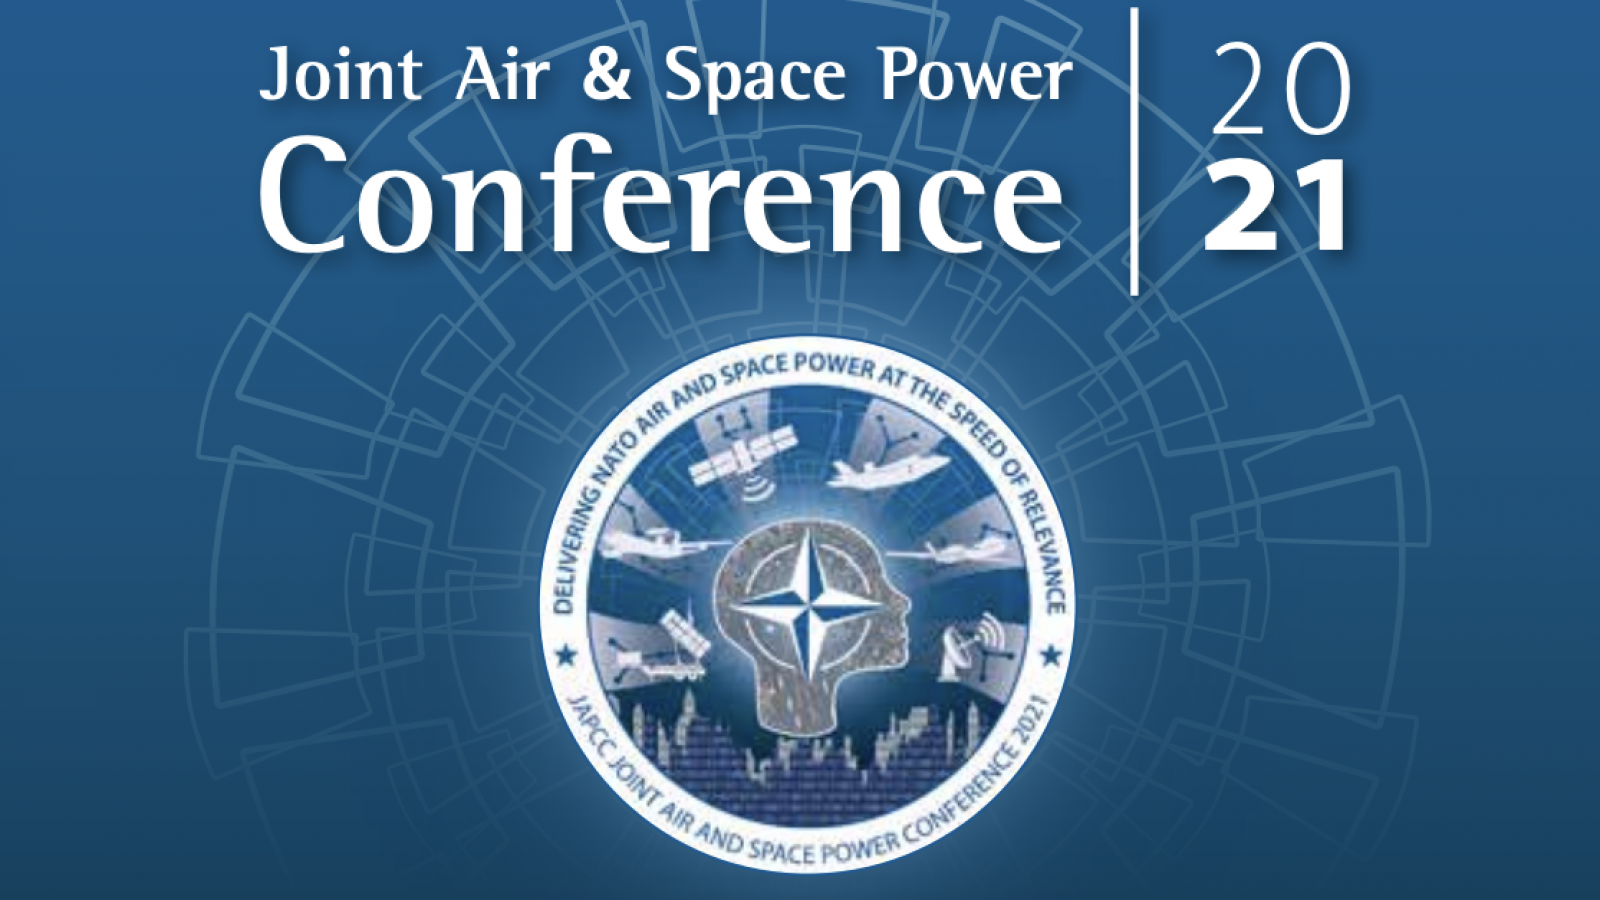 Cover of the Joint Air and Space Power Conference 2021, in blue and white, with a NATO JAPCC seal in the center